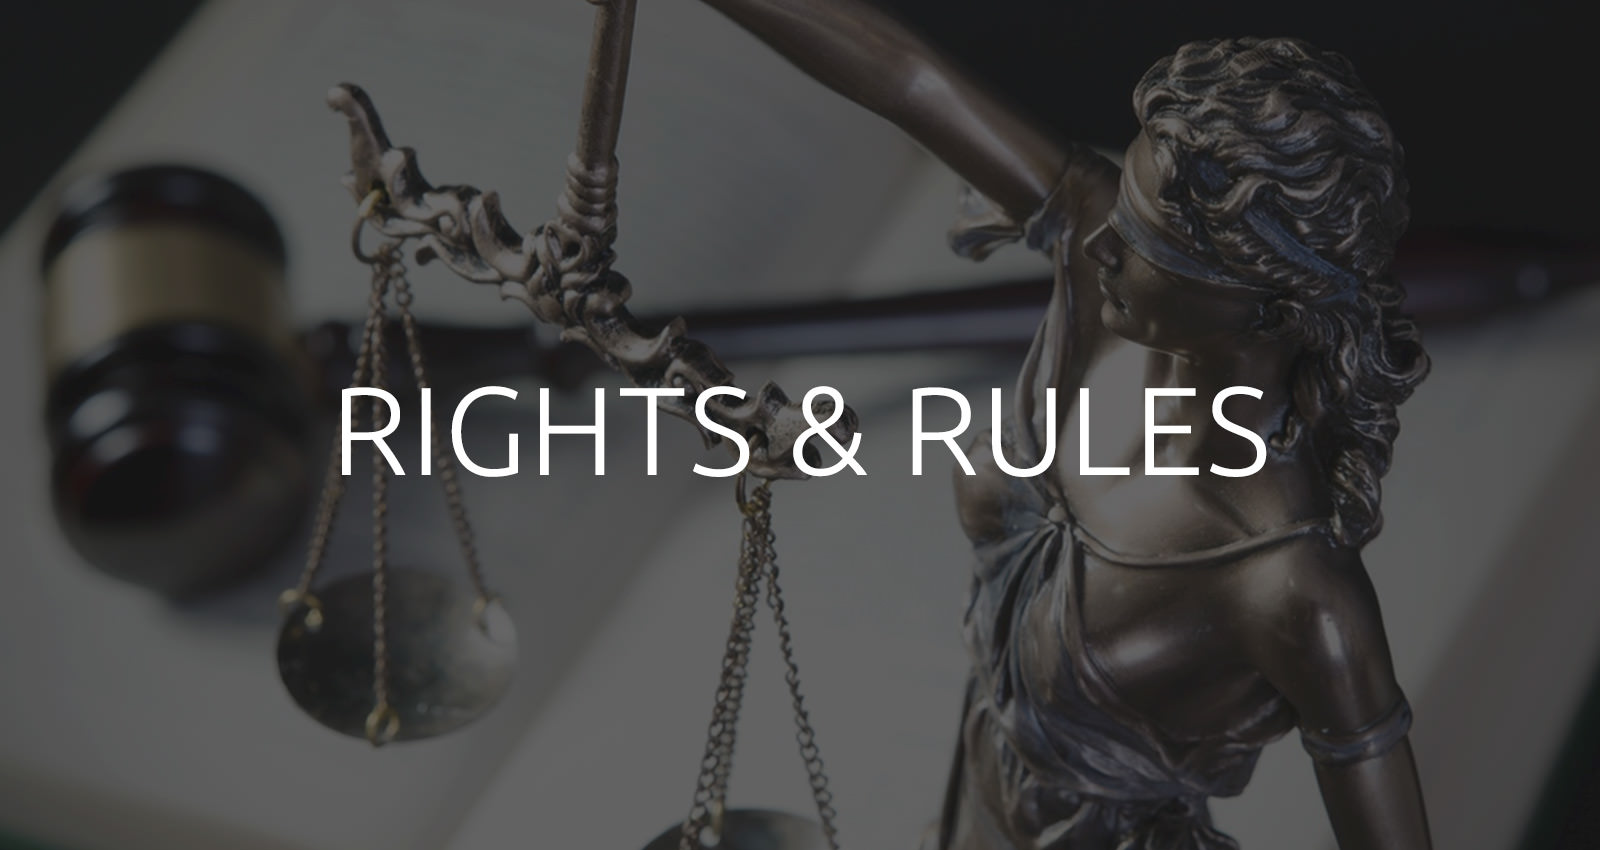 Right and rules